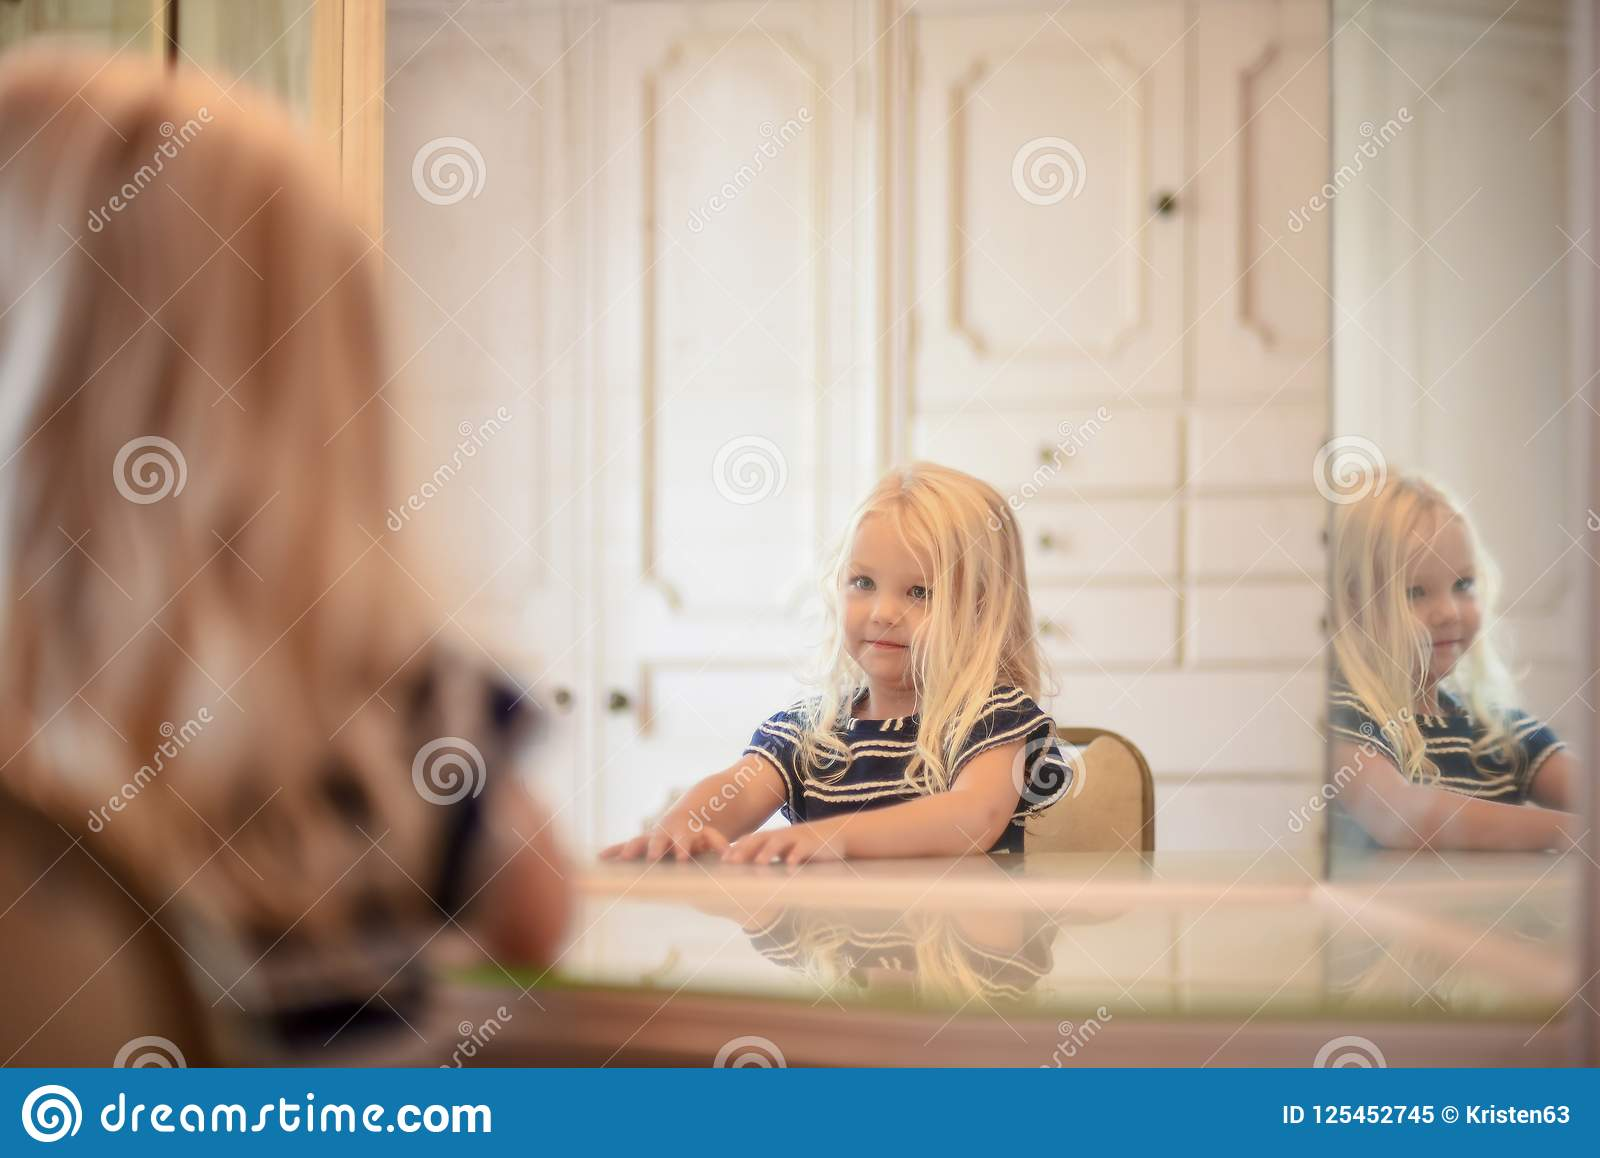 Young Blonde Girl Sitting At Vanity Mirror In Dressing Room Look